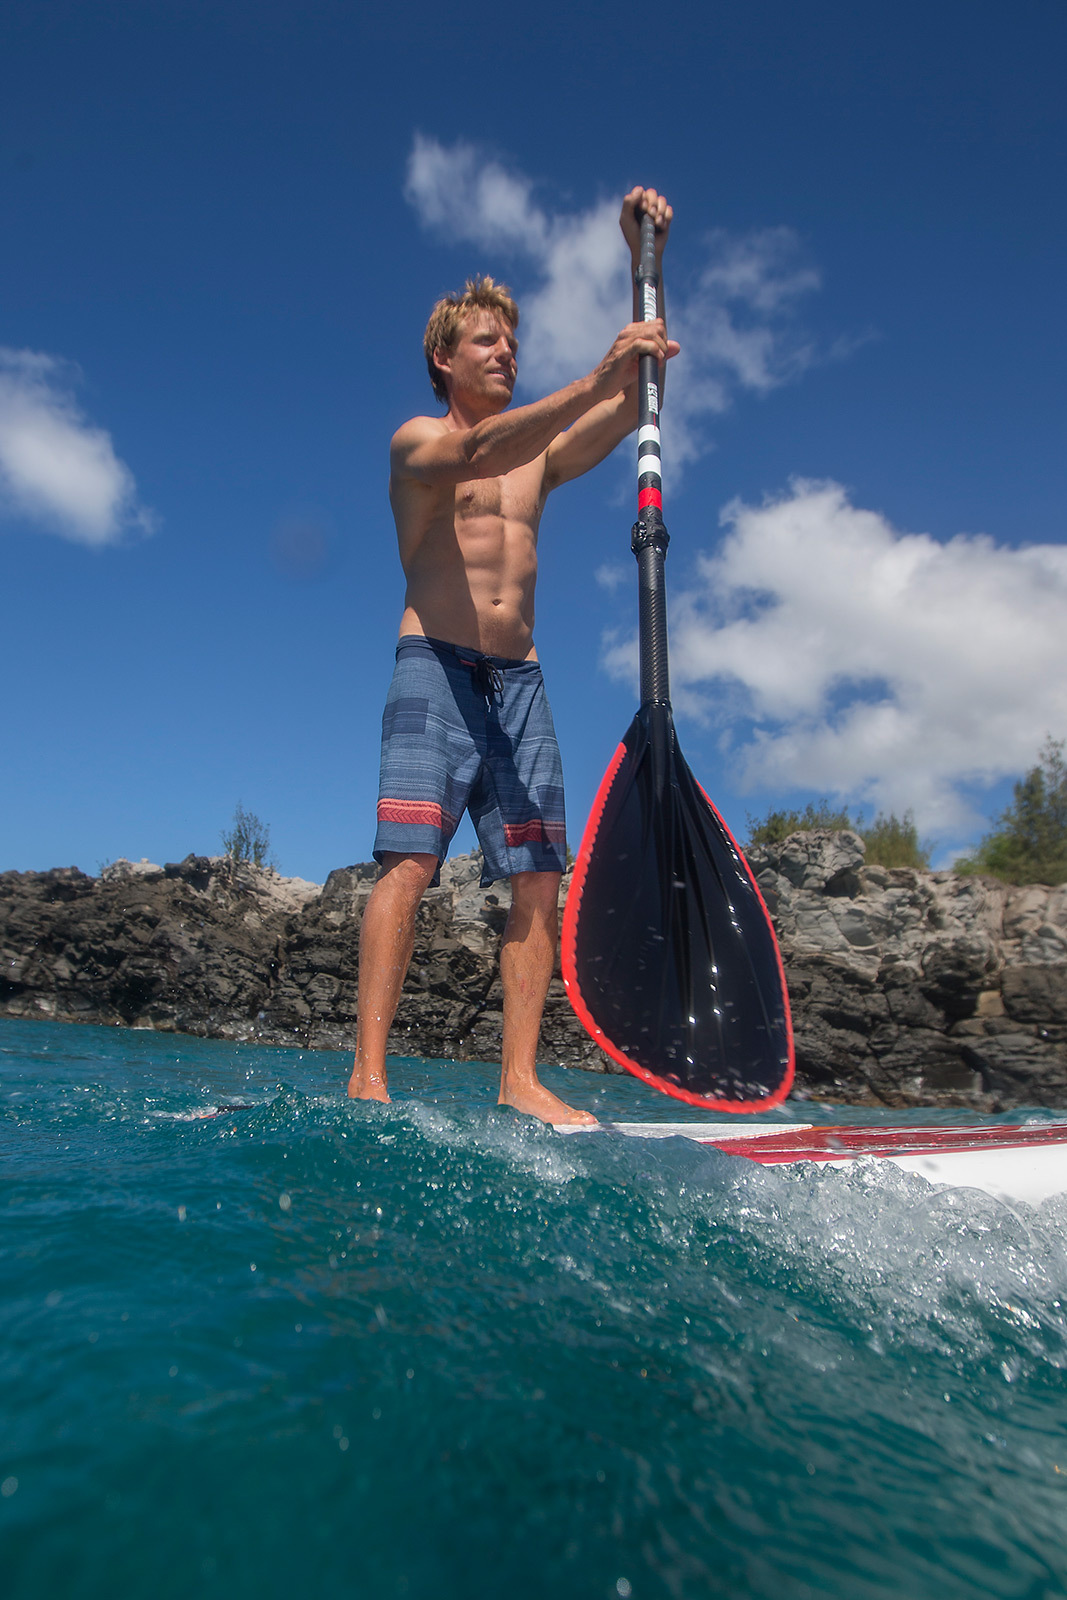 Klaas_Fly_Pure_Paddle-FANATIC_SUP_MAUI_DY_2_Disc3_3271-vorschau